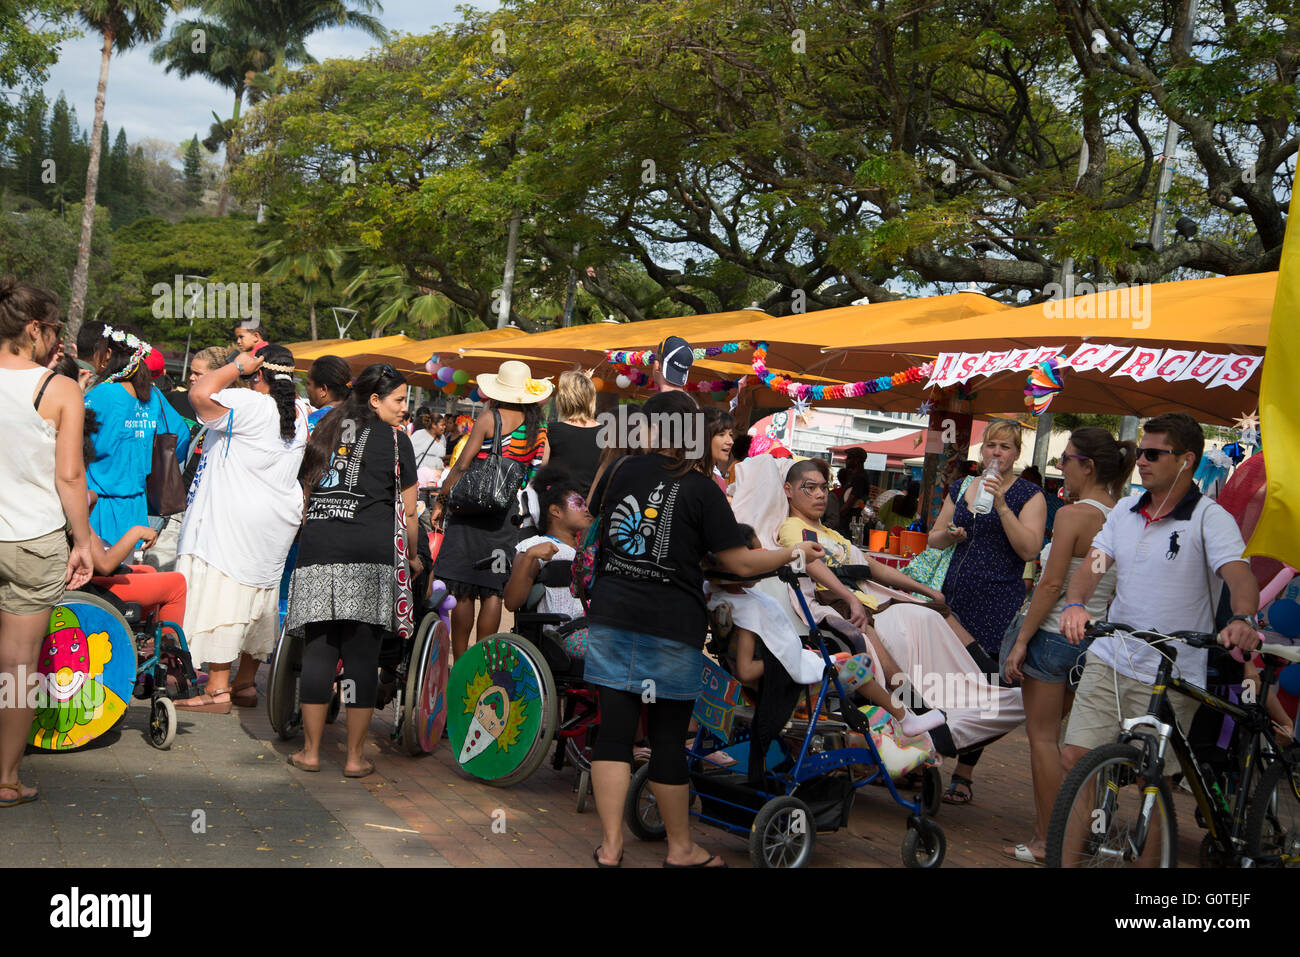 social awareness and participation fair to encourage and support inclusion and integration of people with disabilities. - Stock Image